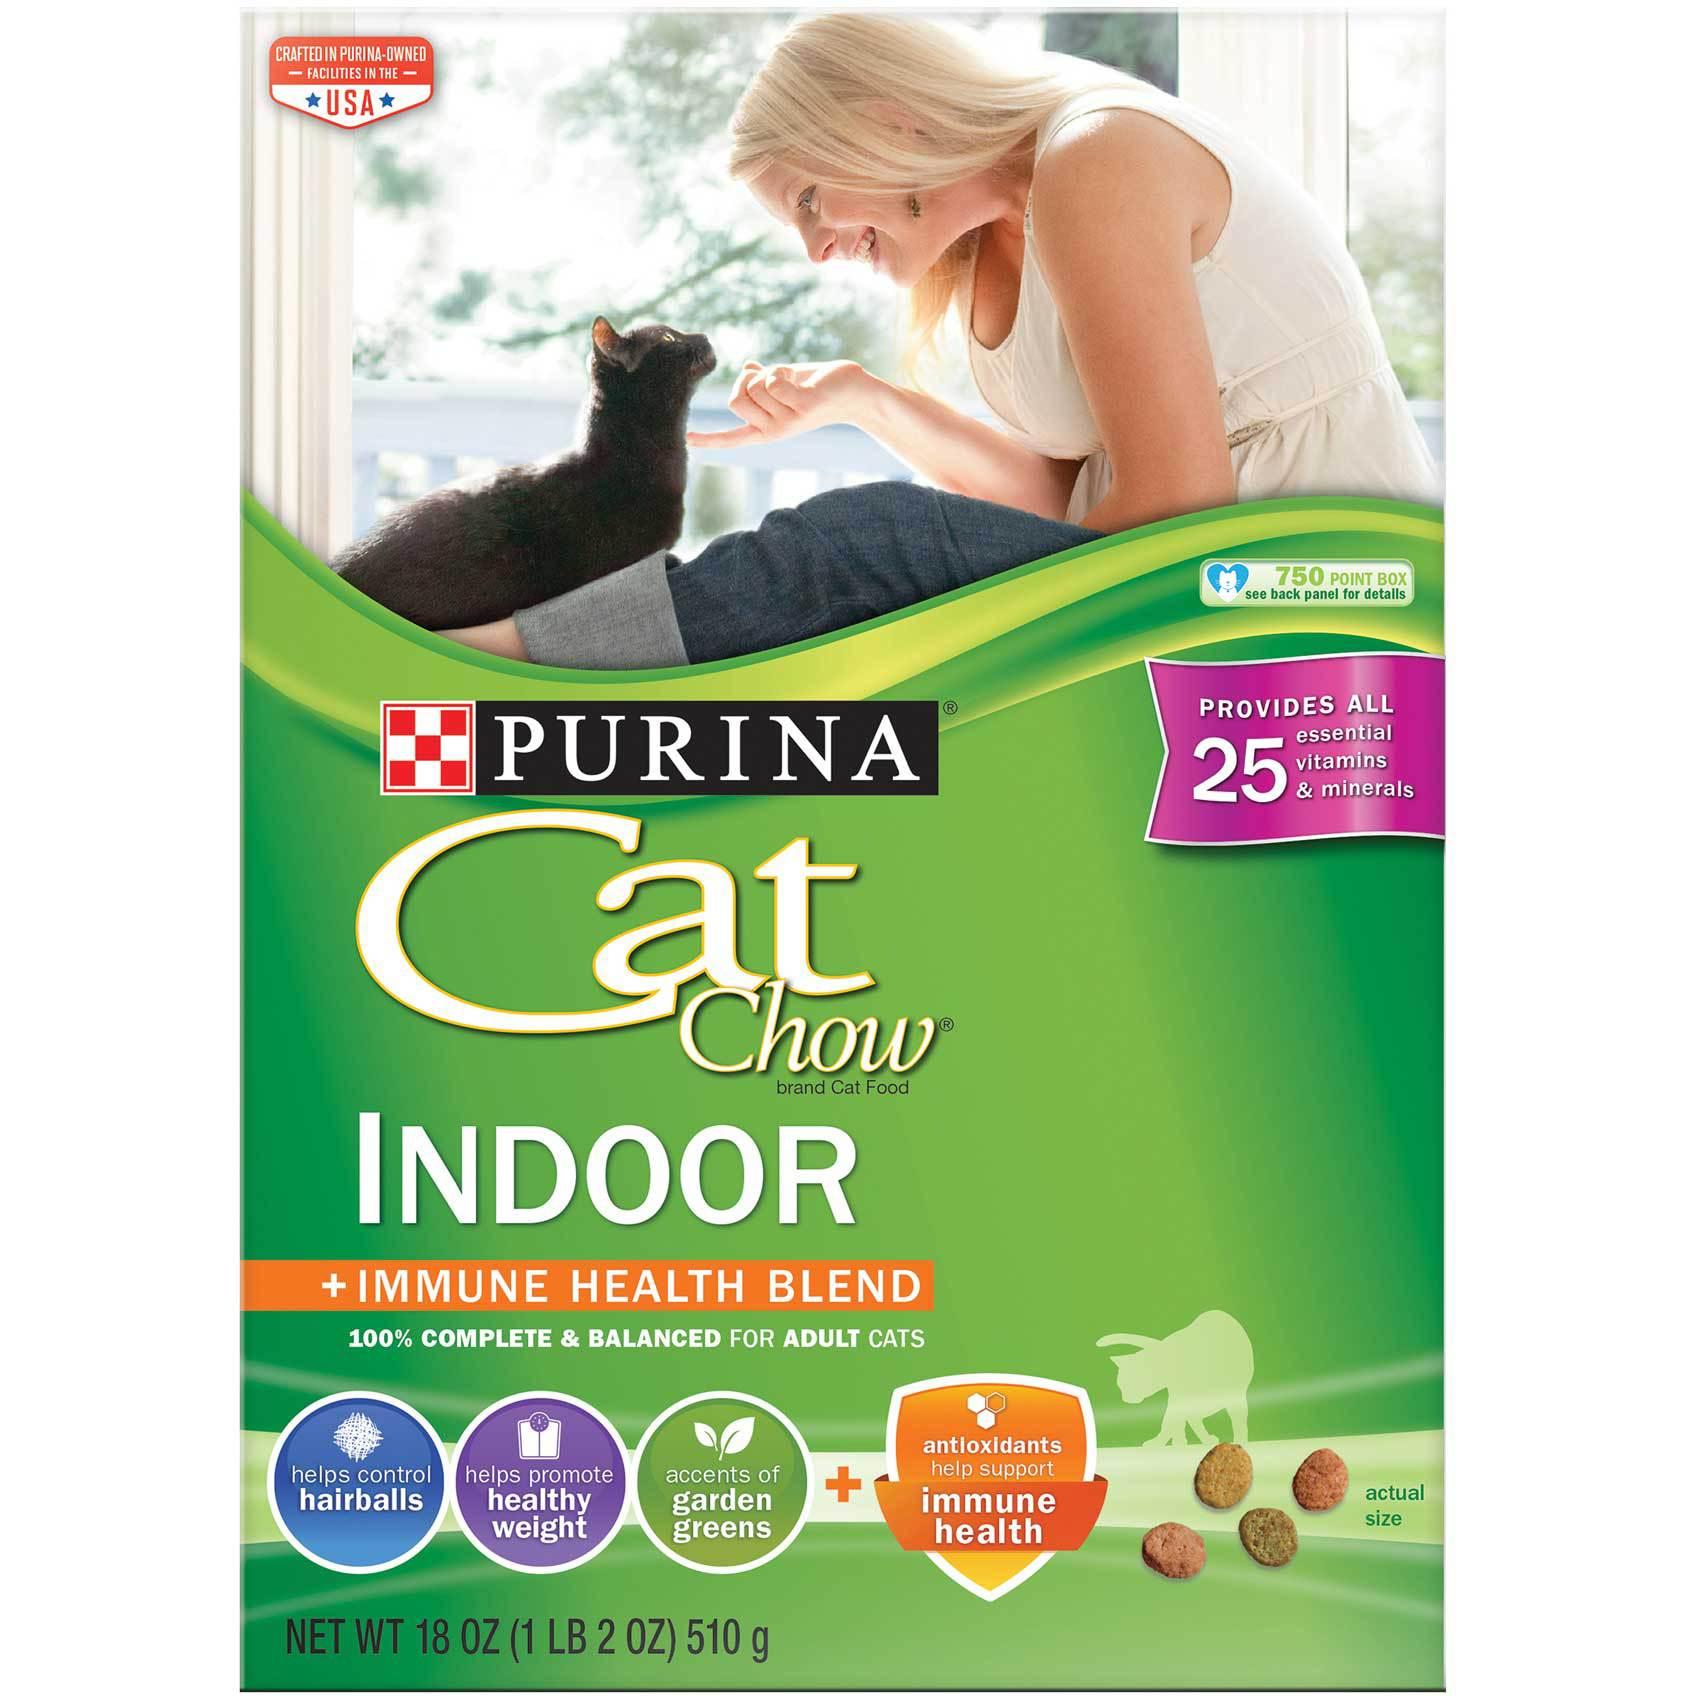 PURINA CAT CHOW INDOOR 510G